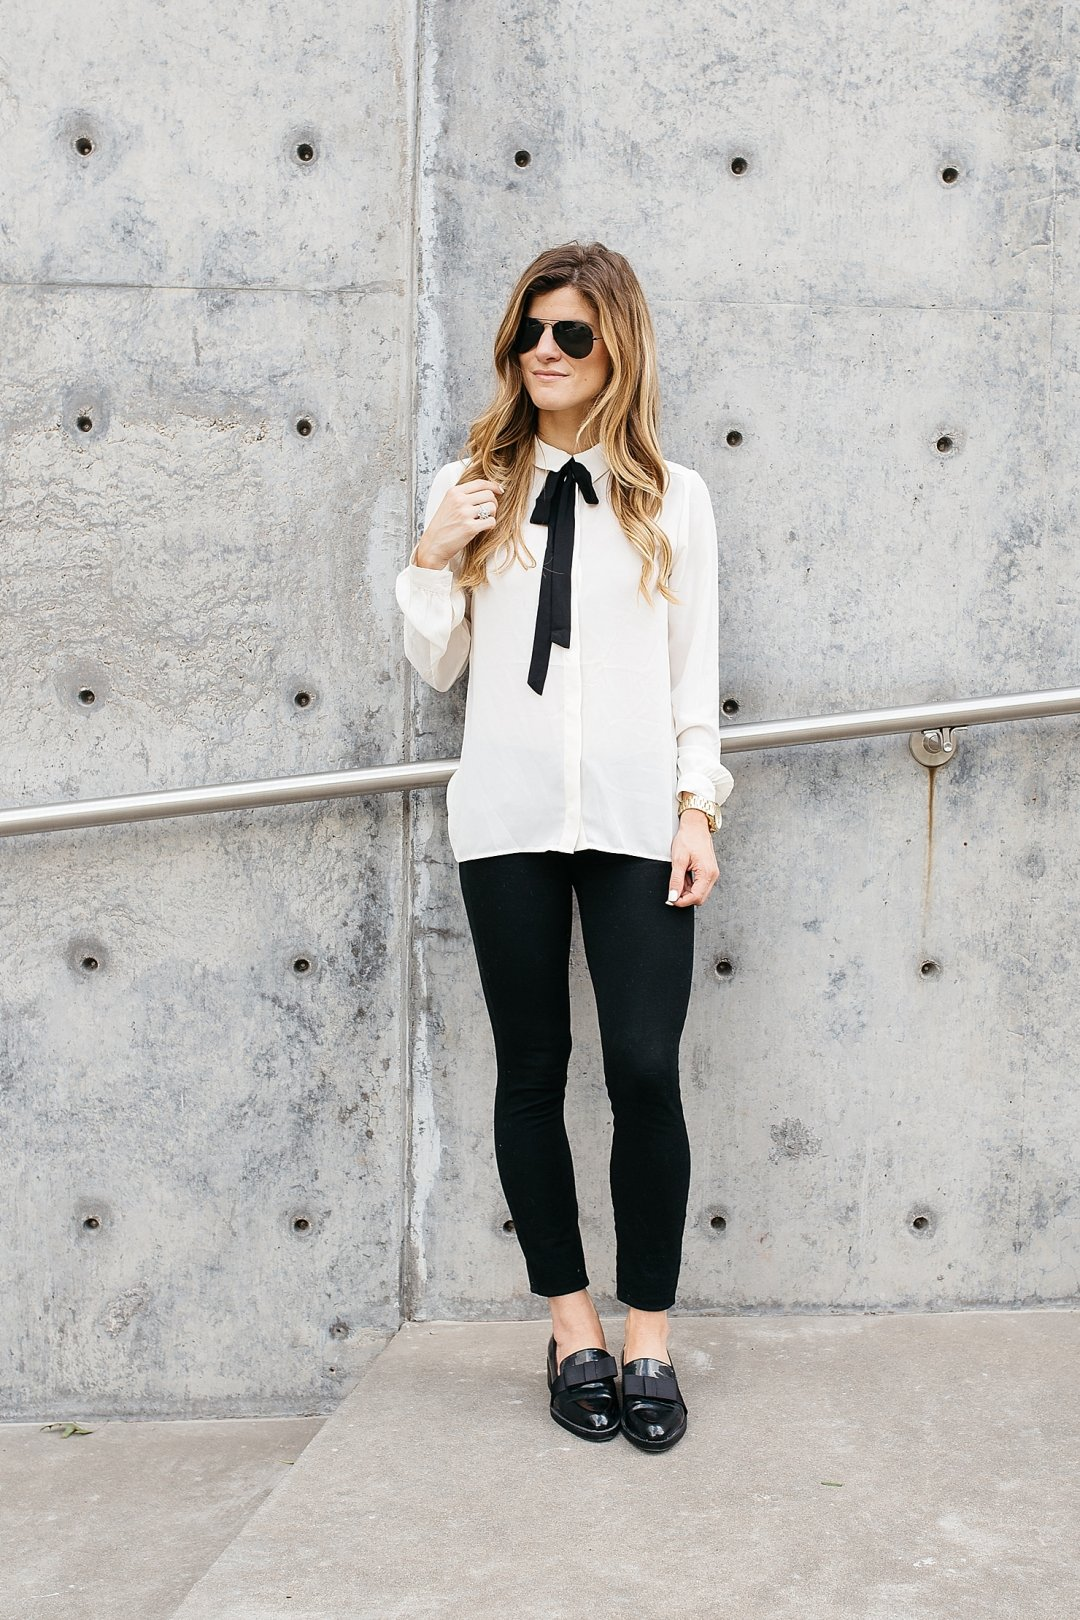 business casual outfit, what to wear to work, fall work outfit idea, office wear, work wear, outfit loafers, pussy bow blouse, summer work outfit idea, wear to work, off white blouse, black and white work outfit idea